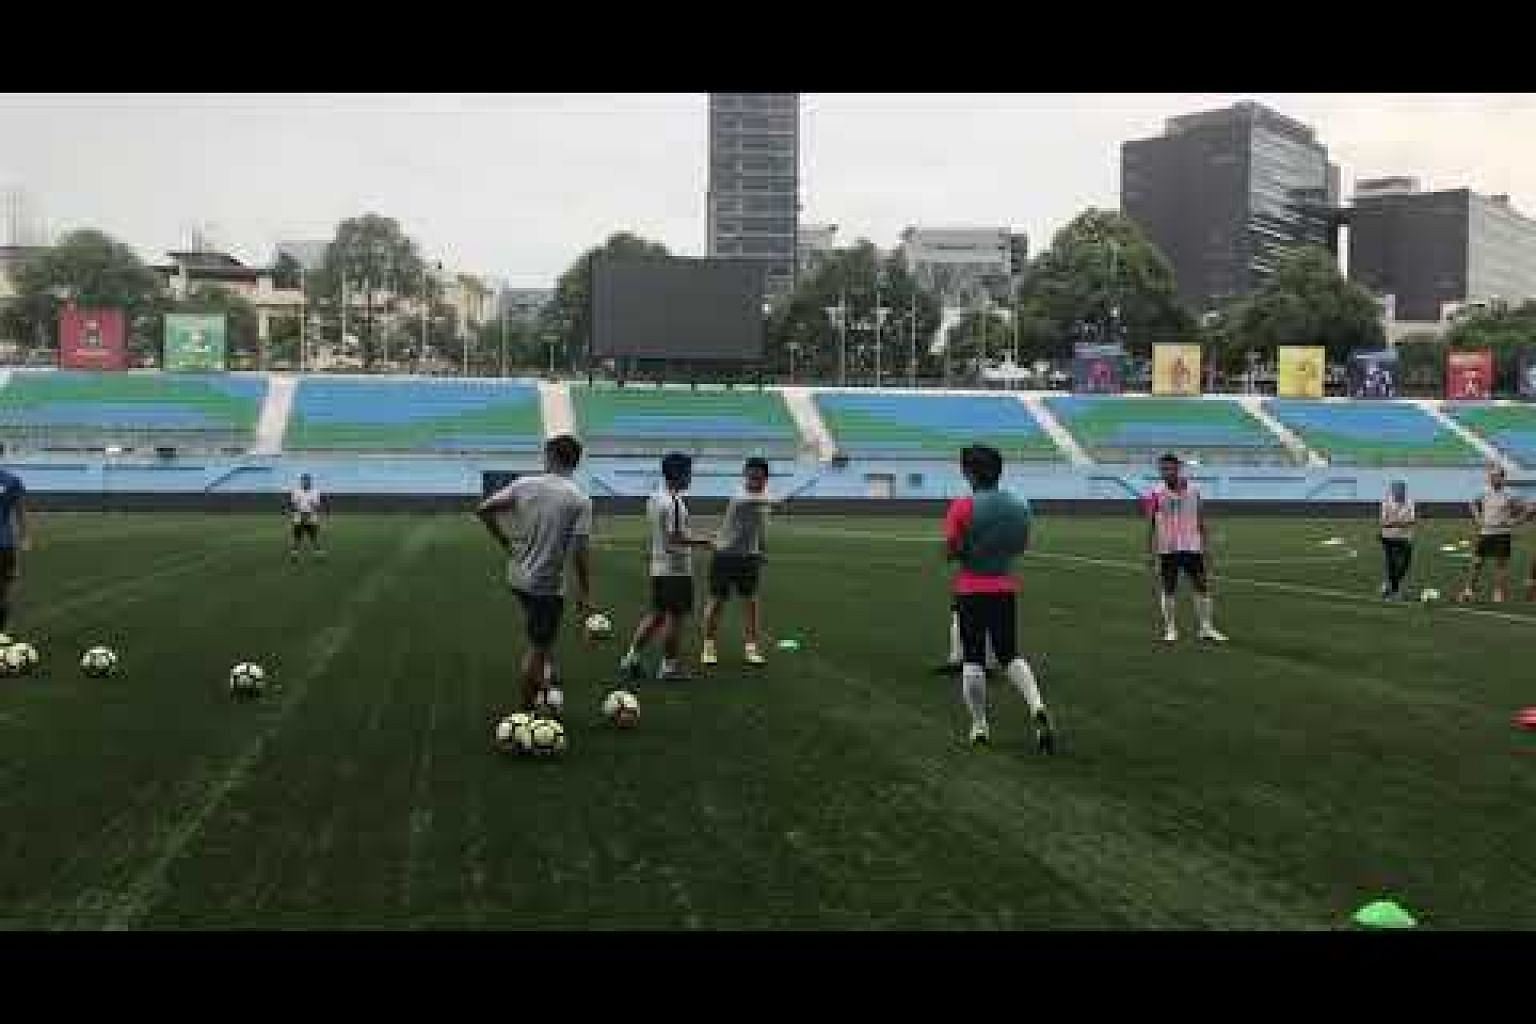 New national football coach Tatsuma Yoshida conducts his first training session with the Lions